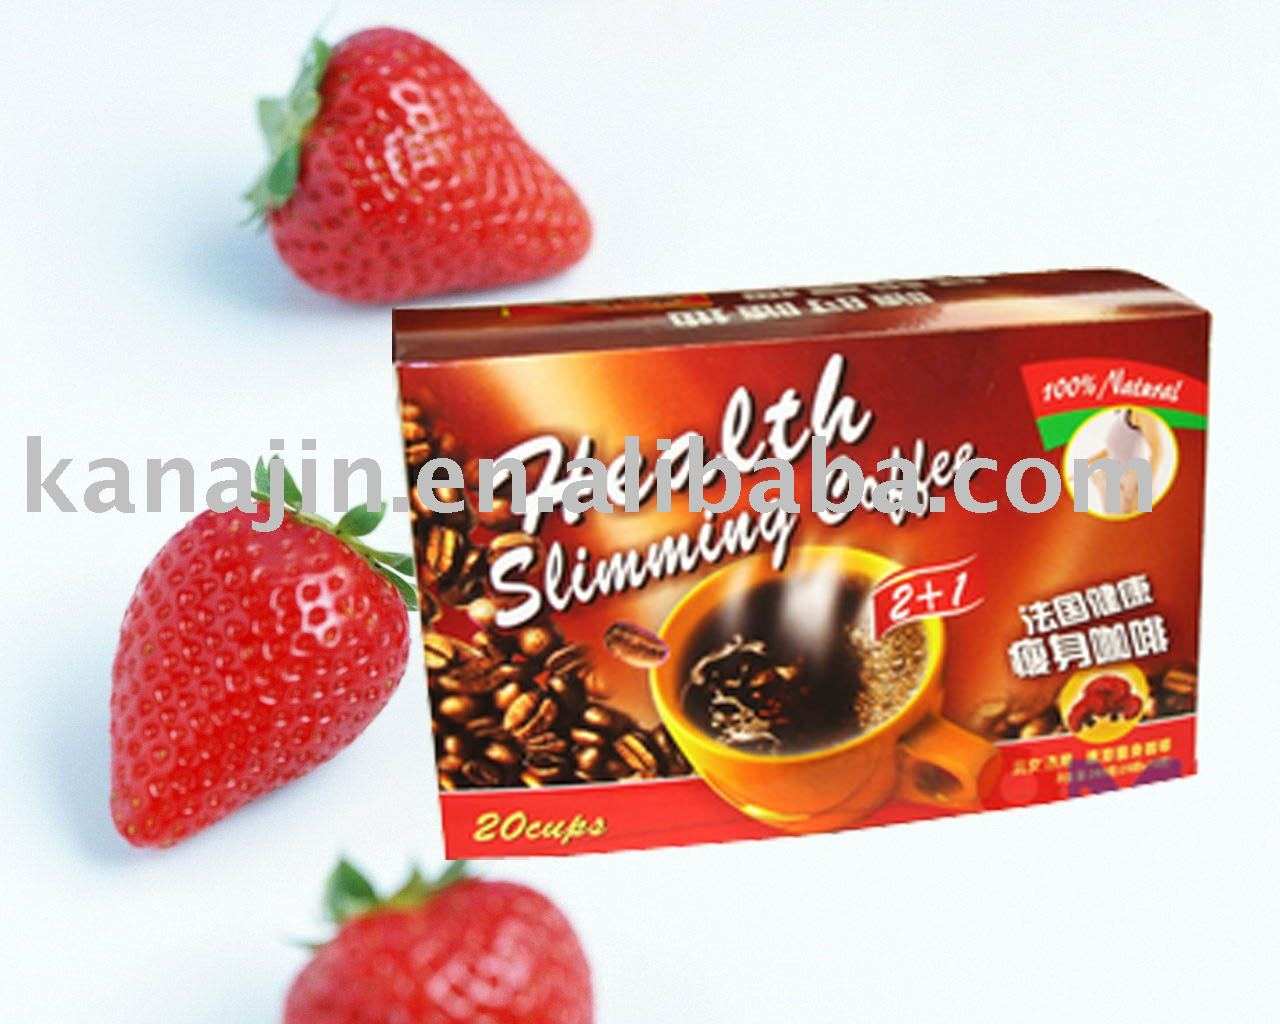 Health Slimming Organic Coffee Private Label